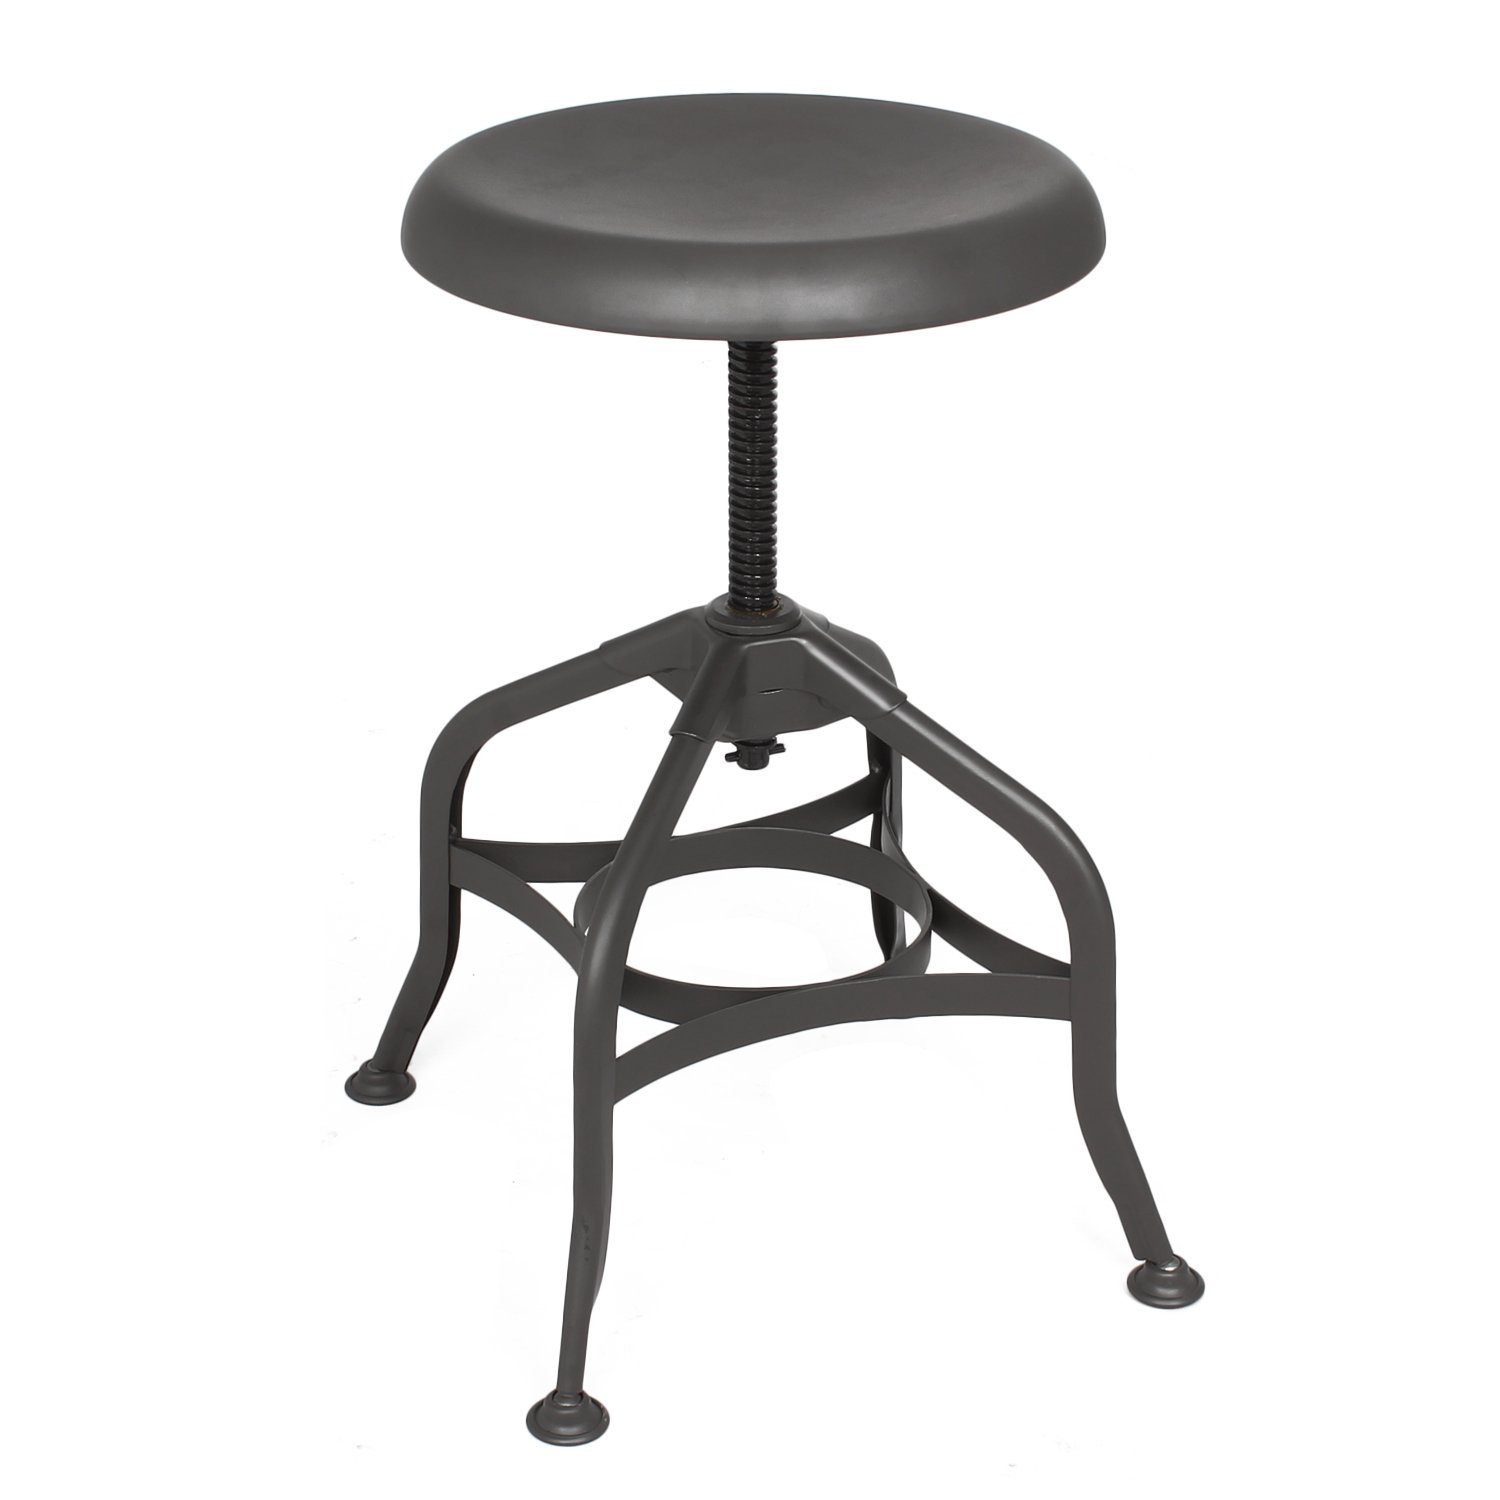 Adeco Industrial Chic Retro Style Swivel Adjustable Height